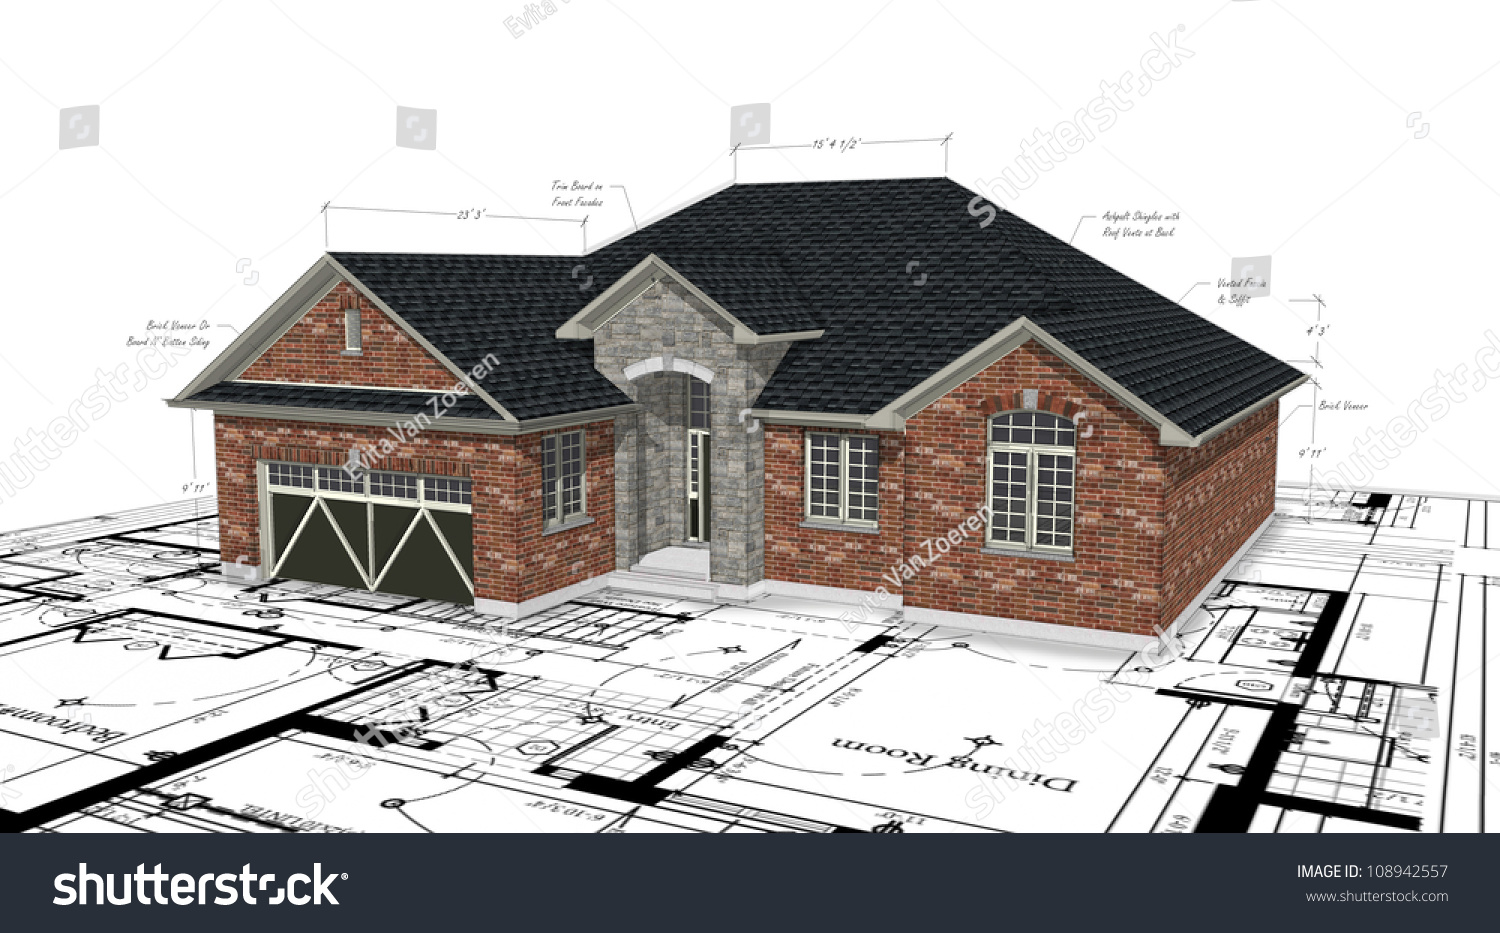 Red brick house plans stock illustration 108942557 for Stock house plans